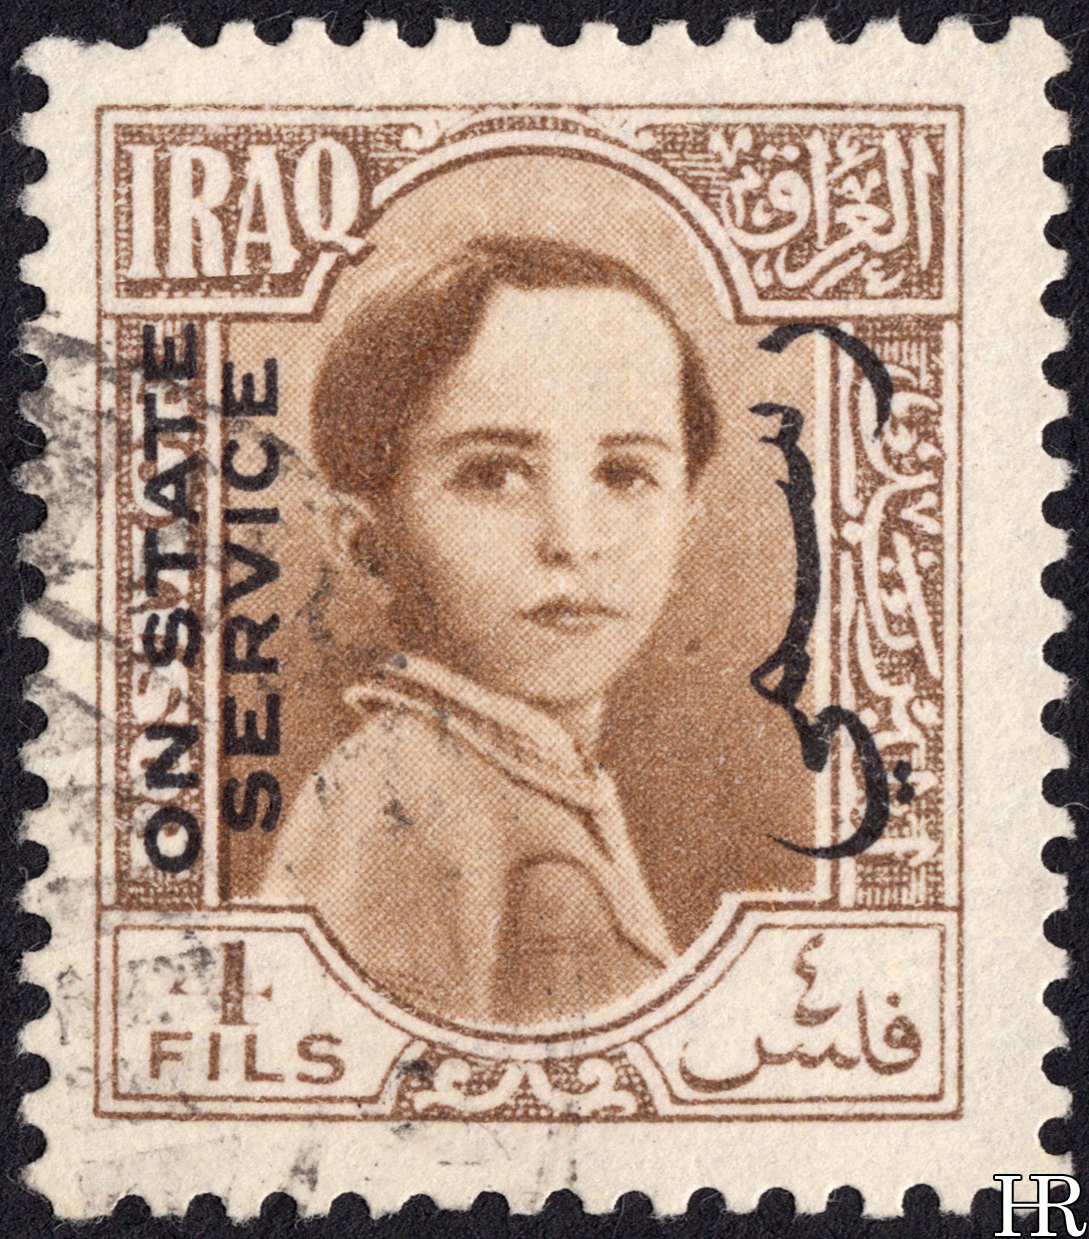 Service overprint on the Cairo issue. On these stamps the overprint seems to have been lithographed rather than typeset.